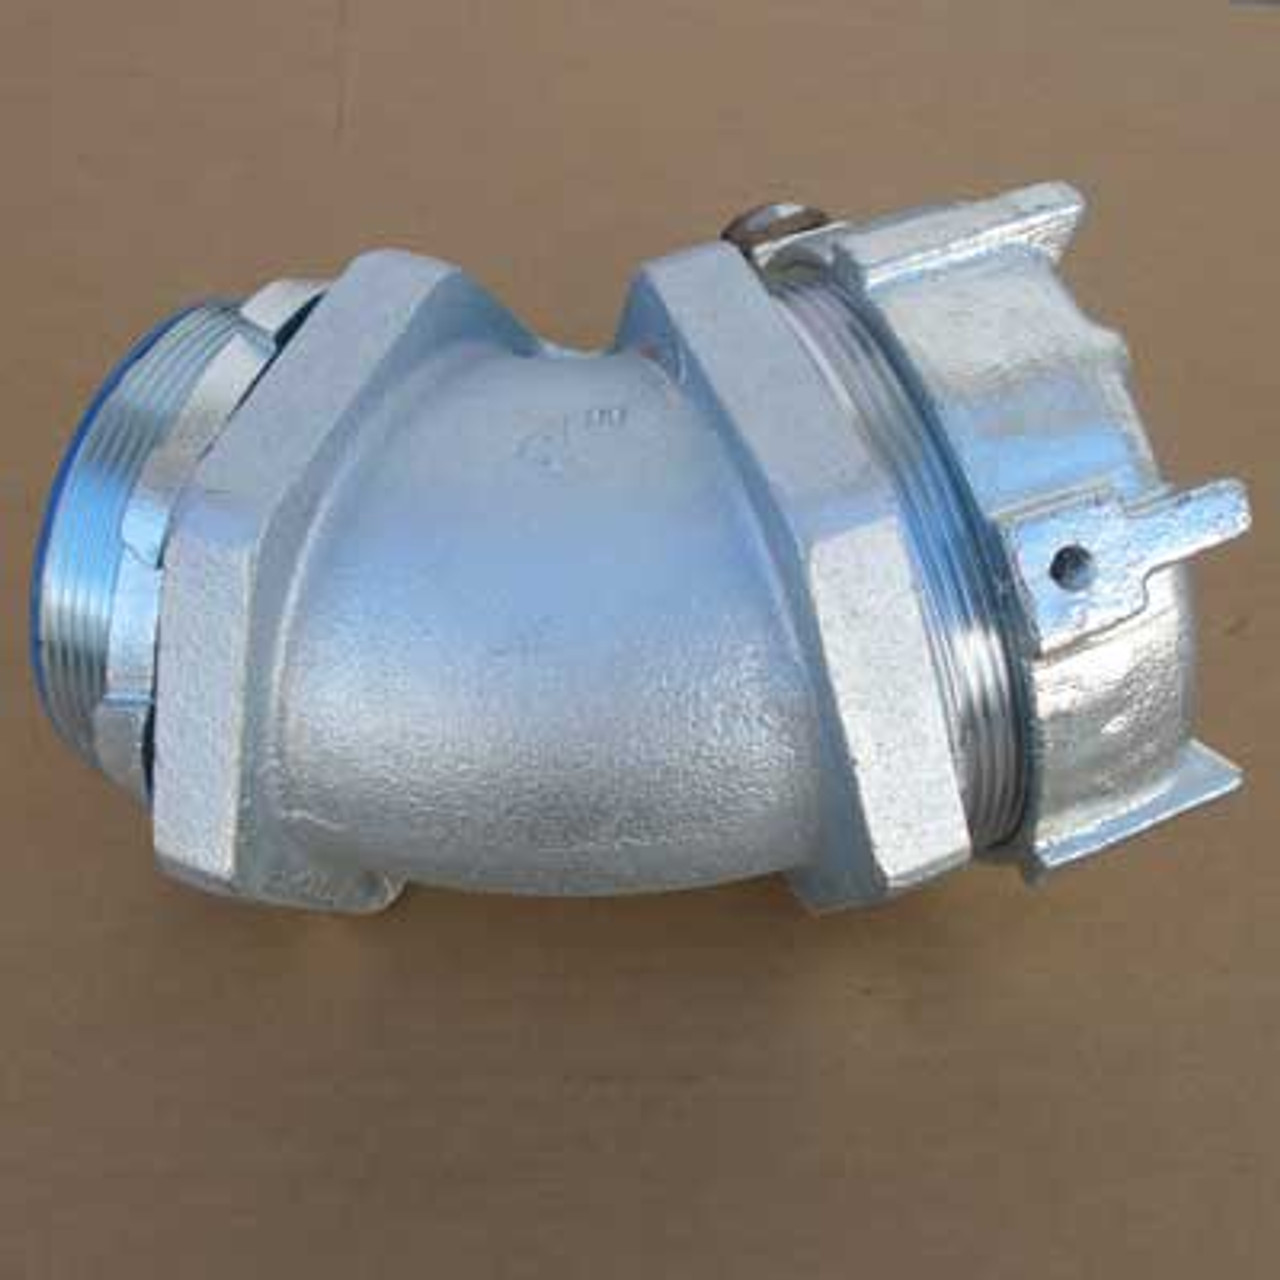 """T&B Fittings 5350GR 4"""" Conduit Connector w/ 45 Degree Angle - New"""